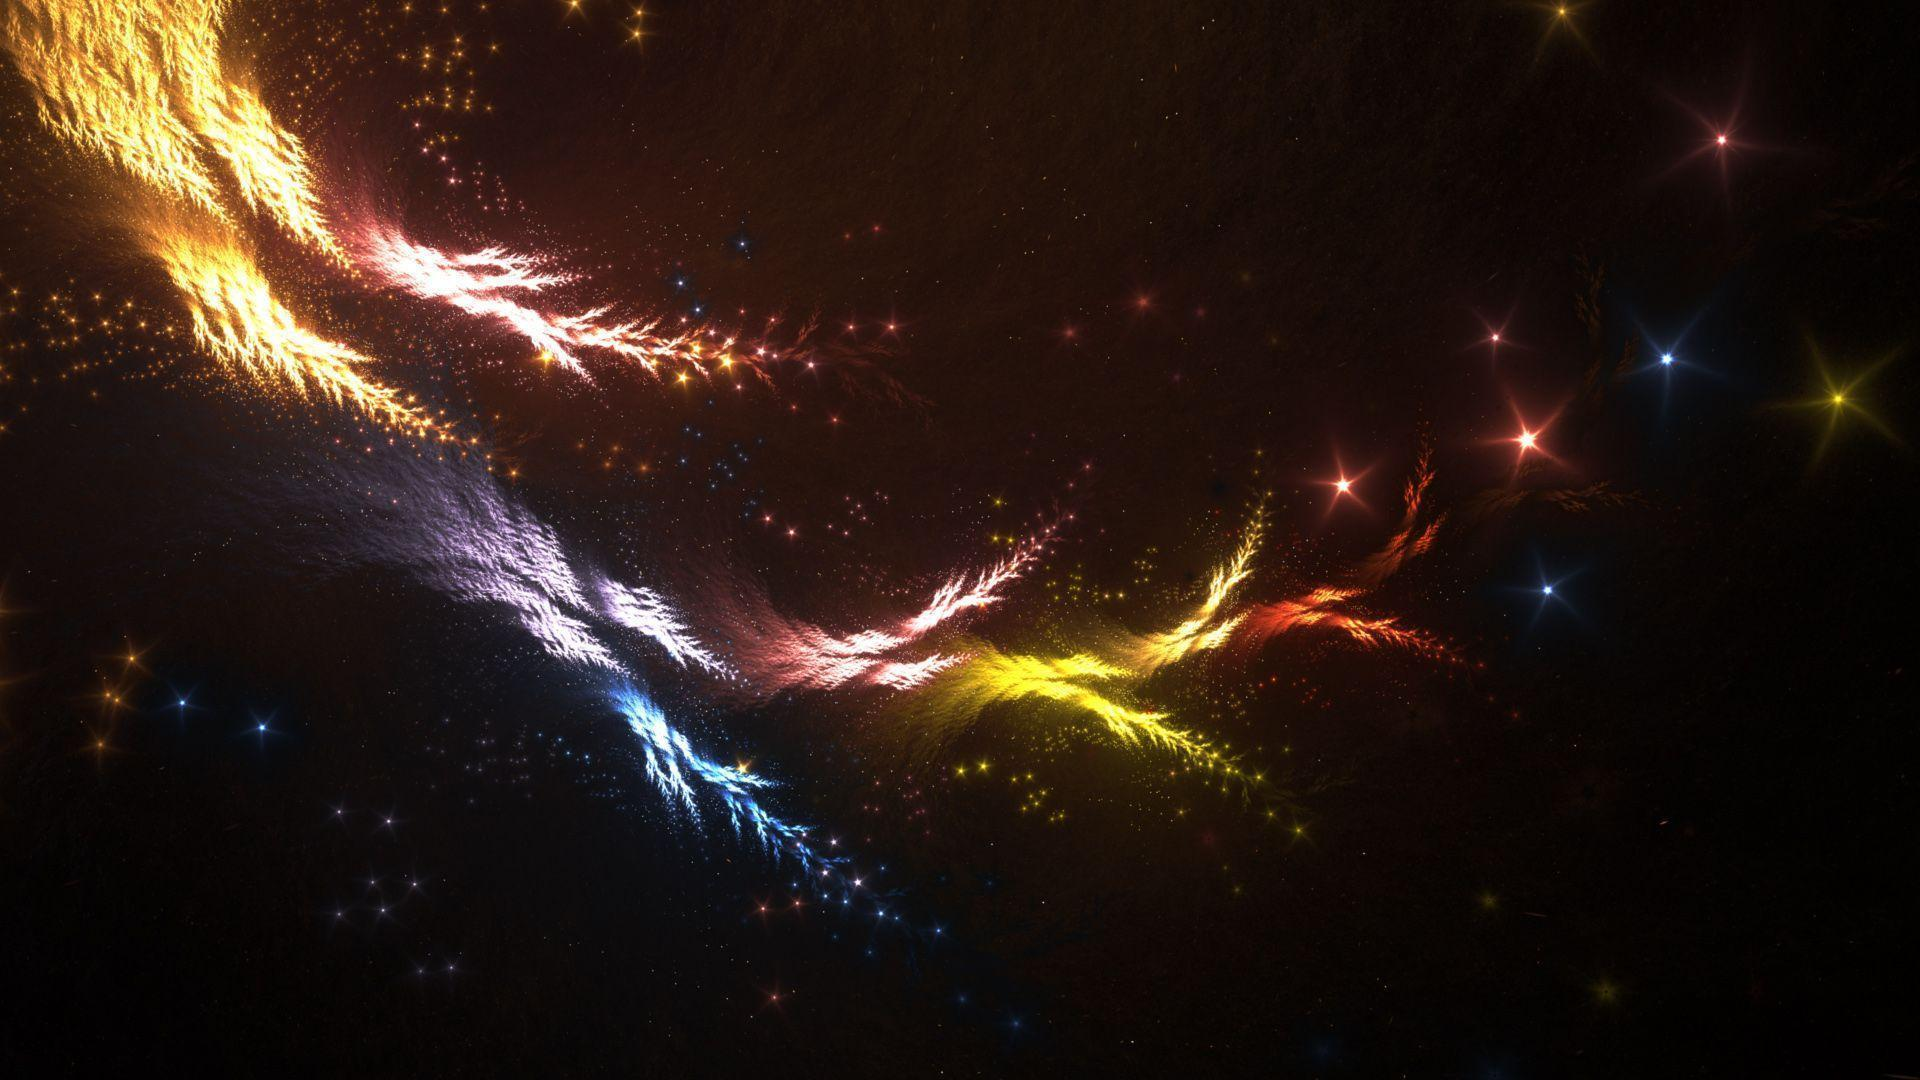 Magical lights wallpapers hd wallpapers